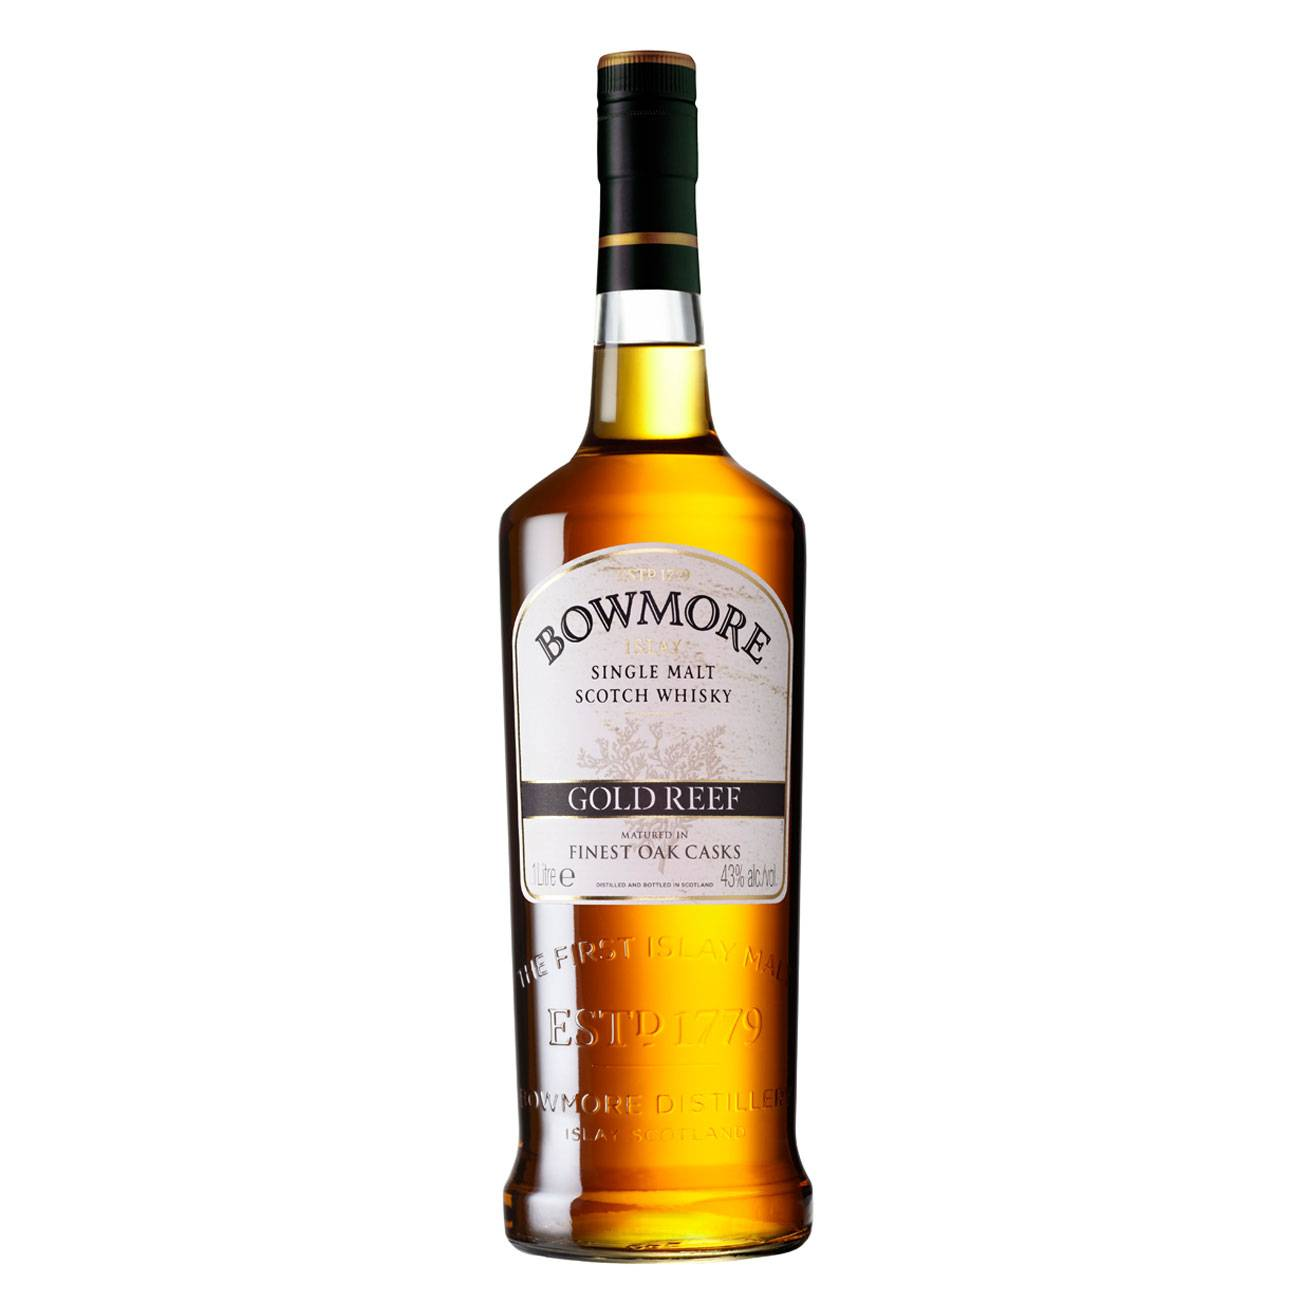 Whisky scotian, GOLD REEF 1000 ML, Bowmore